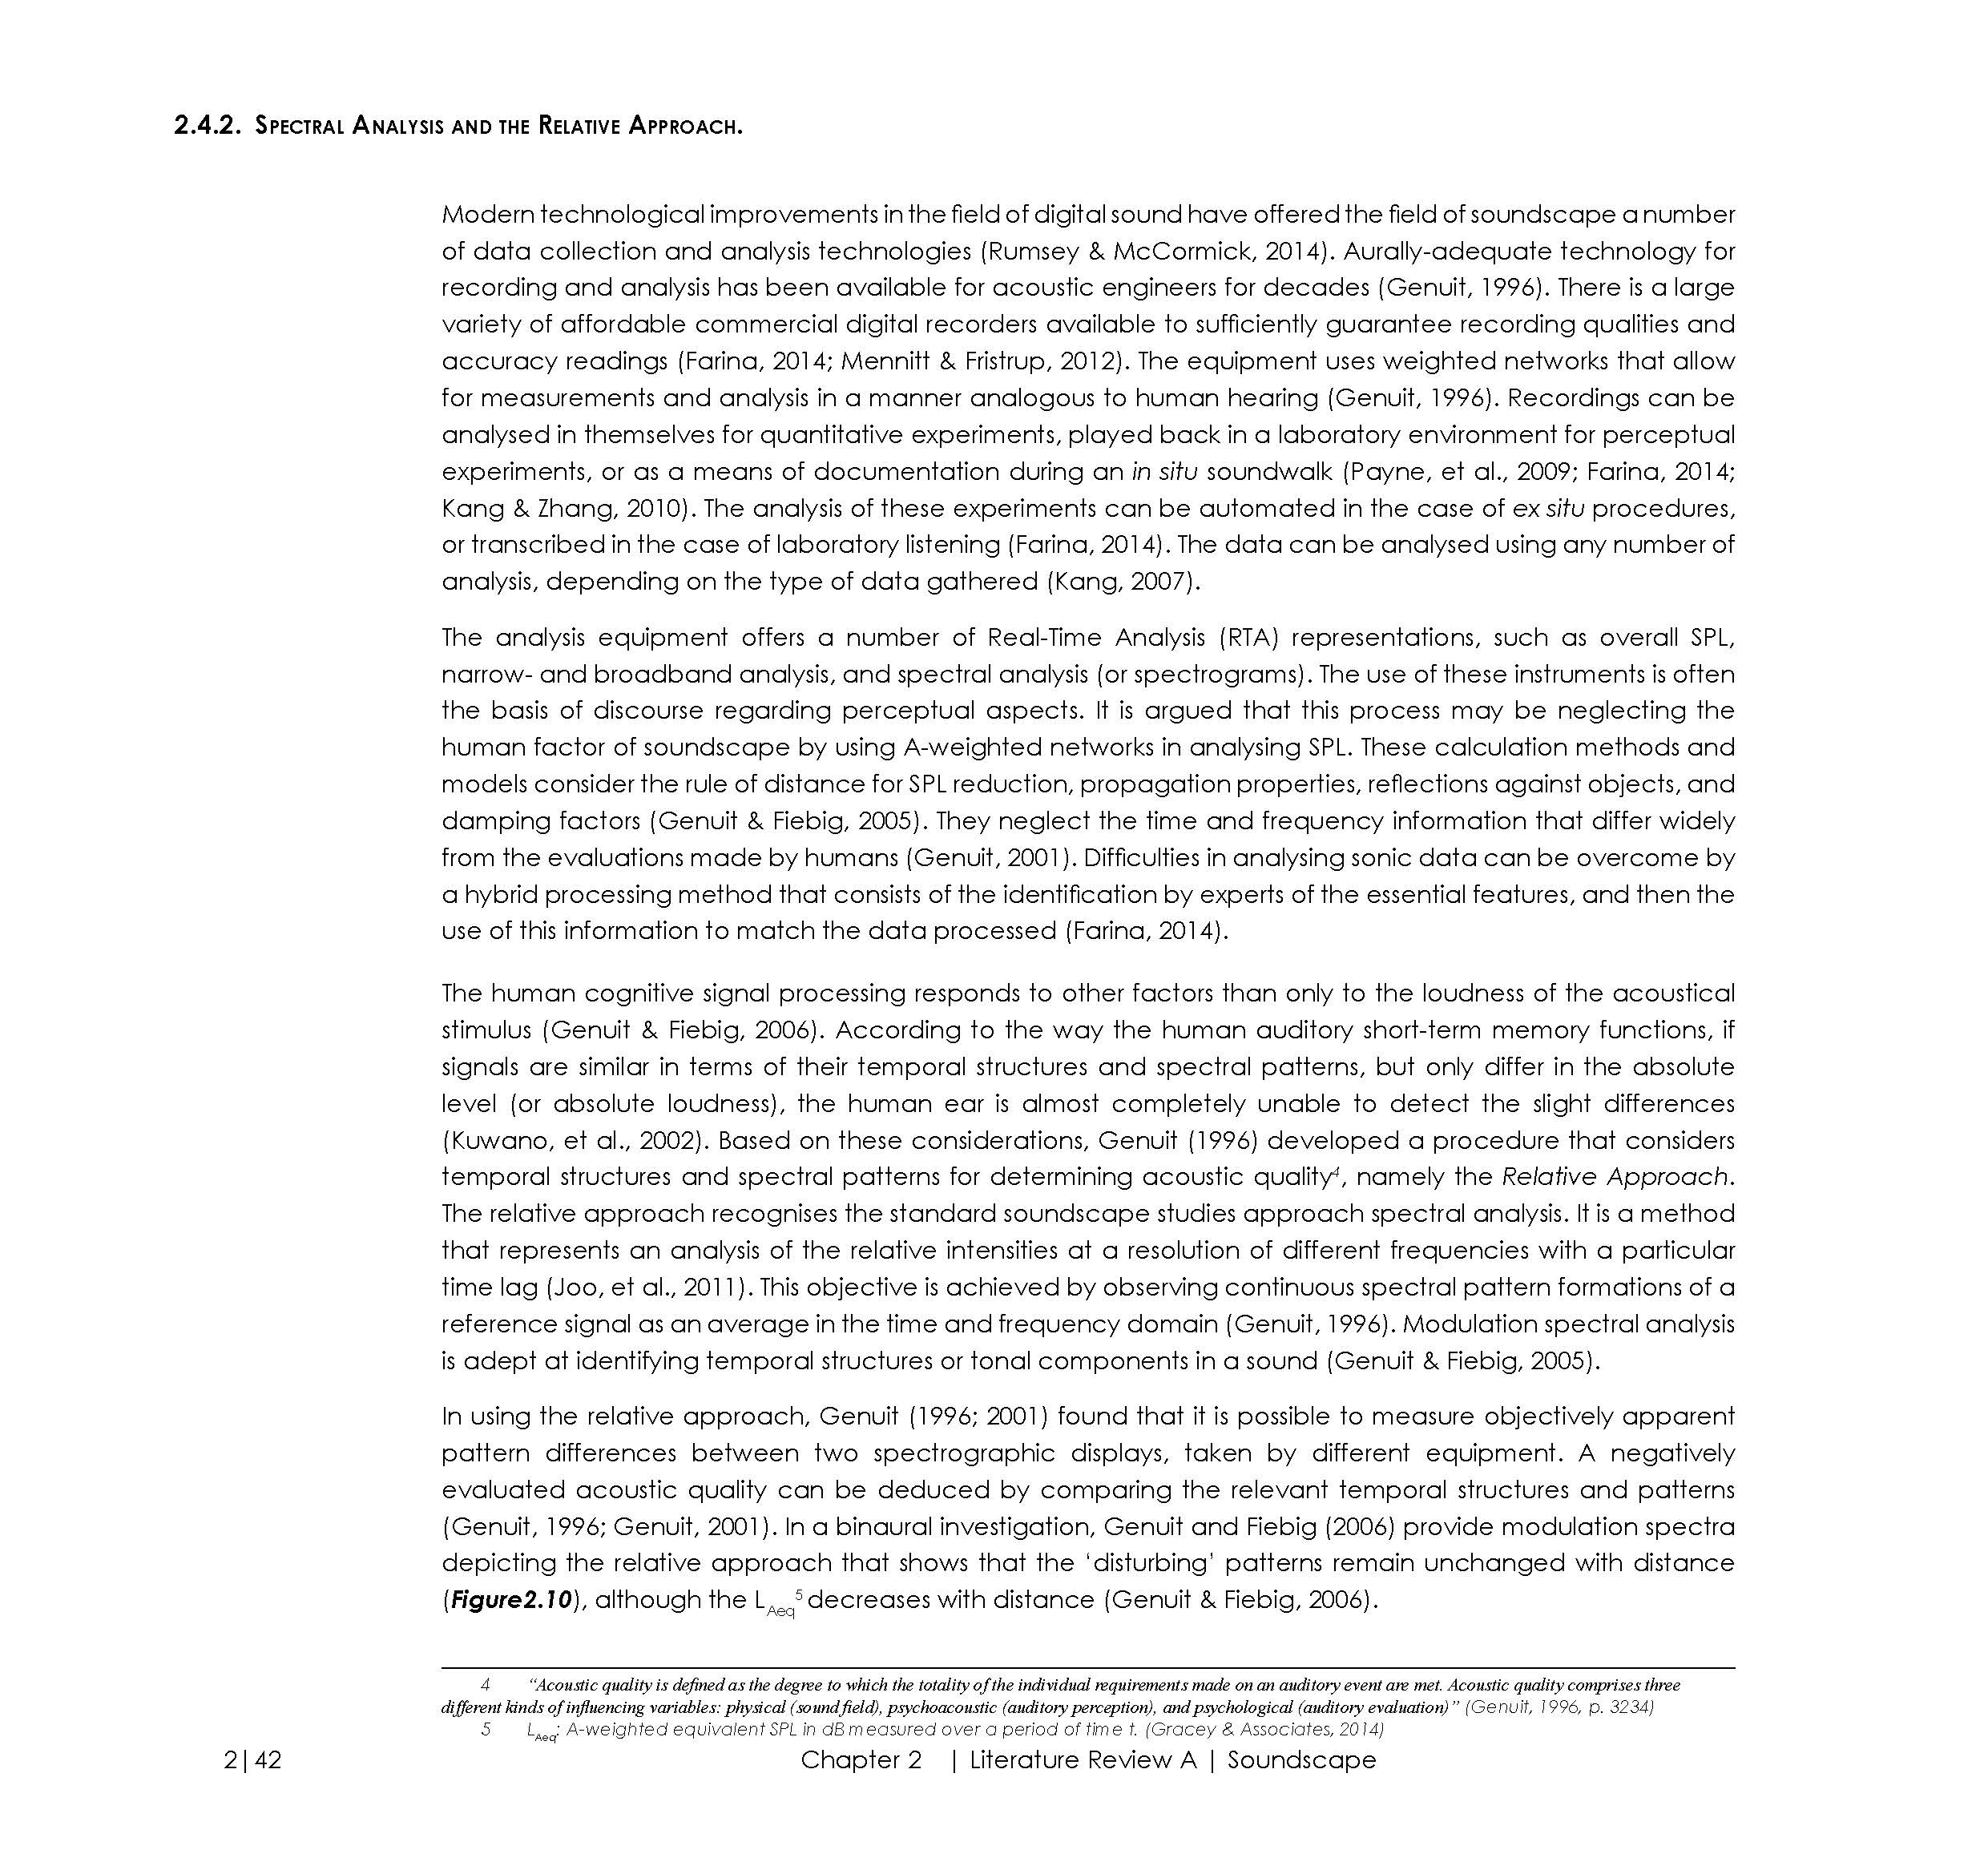 16.03.03_Thesis_01_Interactive_Page_078.jpg